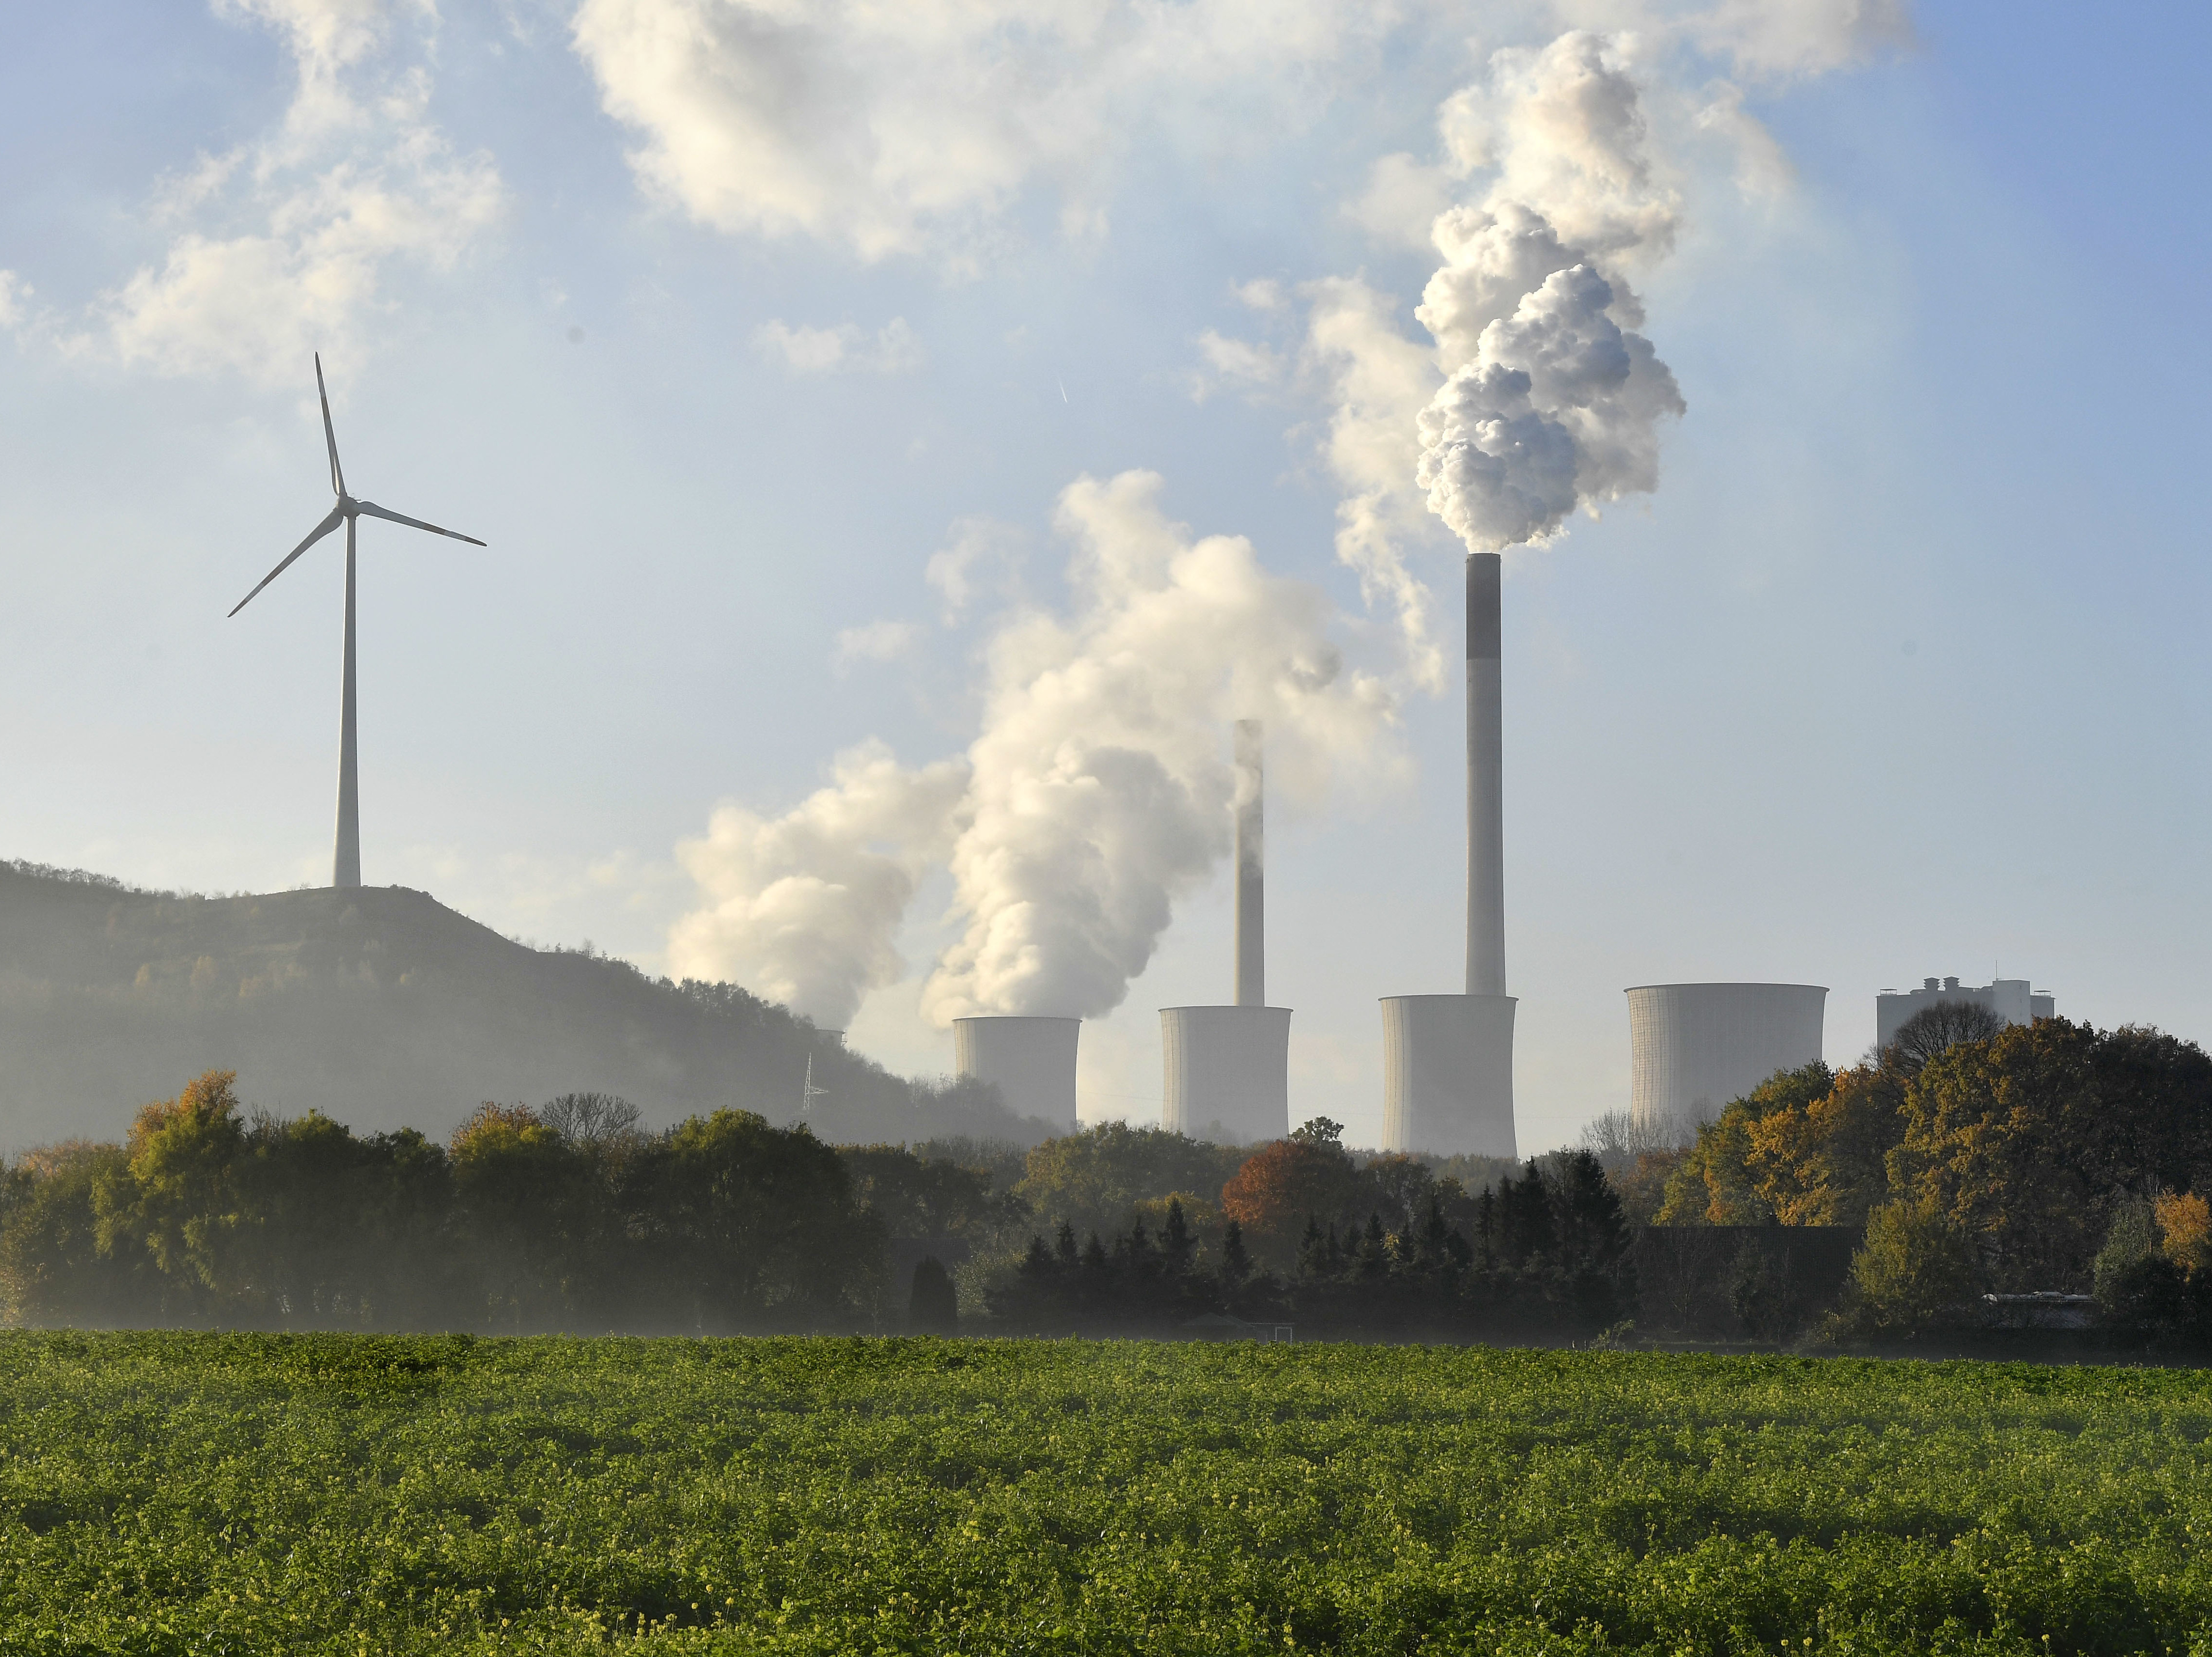 A coal-burning power plant steams in Gelsenkirchen, Germany, while the 23rd UN Conference of the Parties (COP) climate talks end in Bonn, Germany on Nov. 17, 2017.